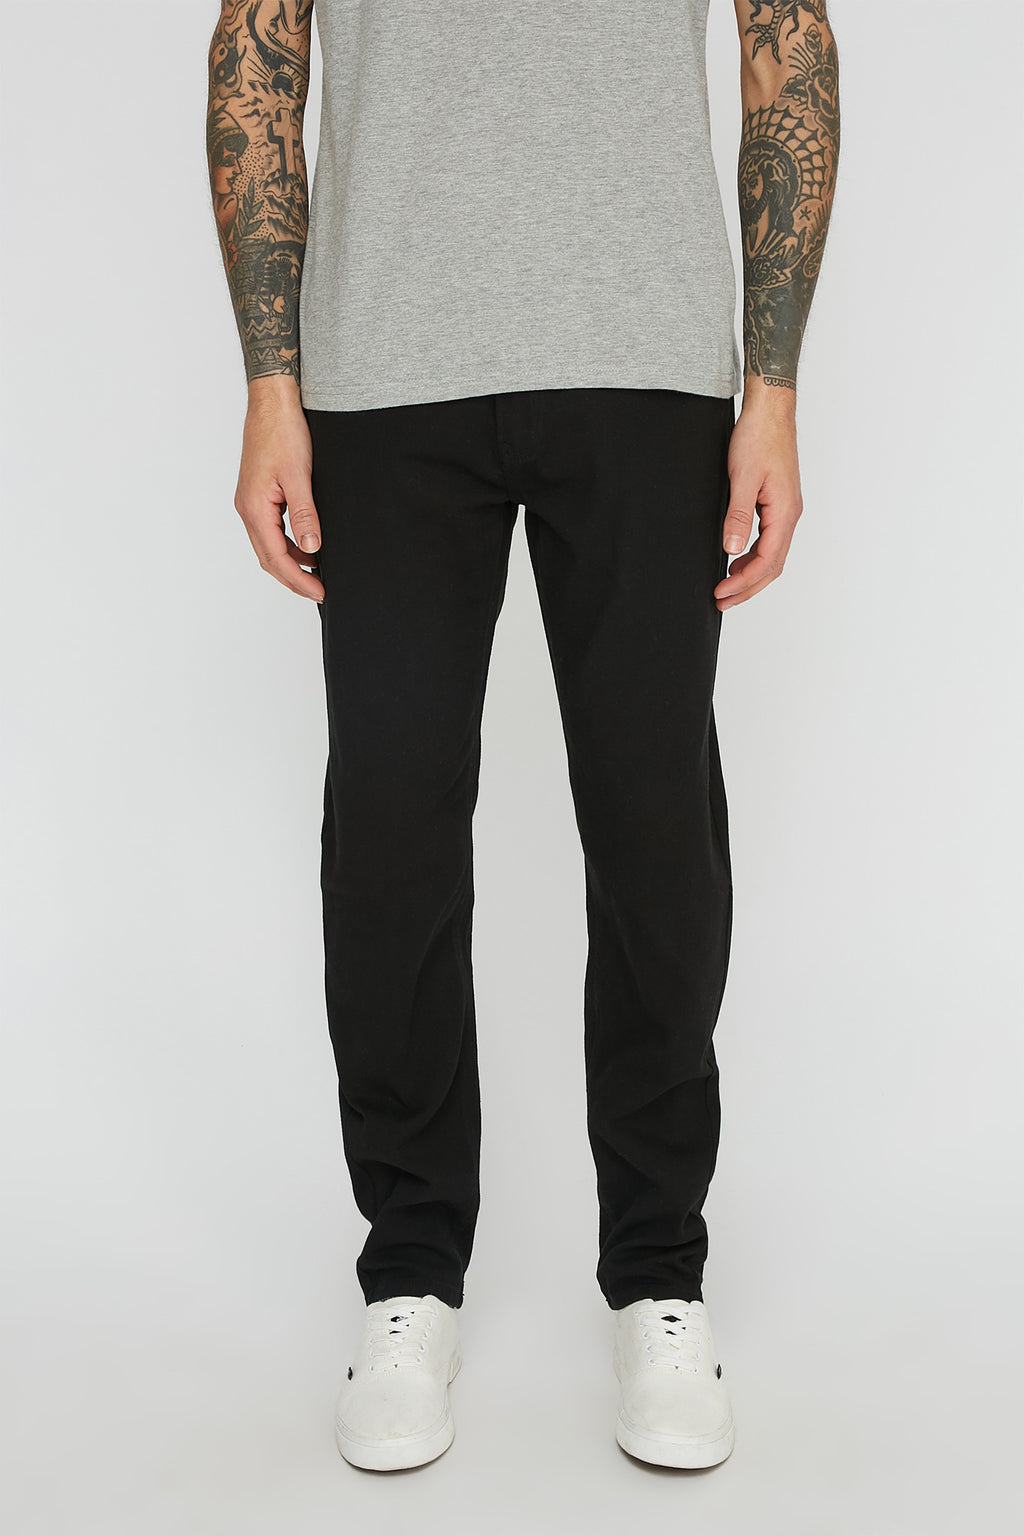 Zoo York Mens Slim Bull Denim